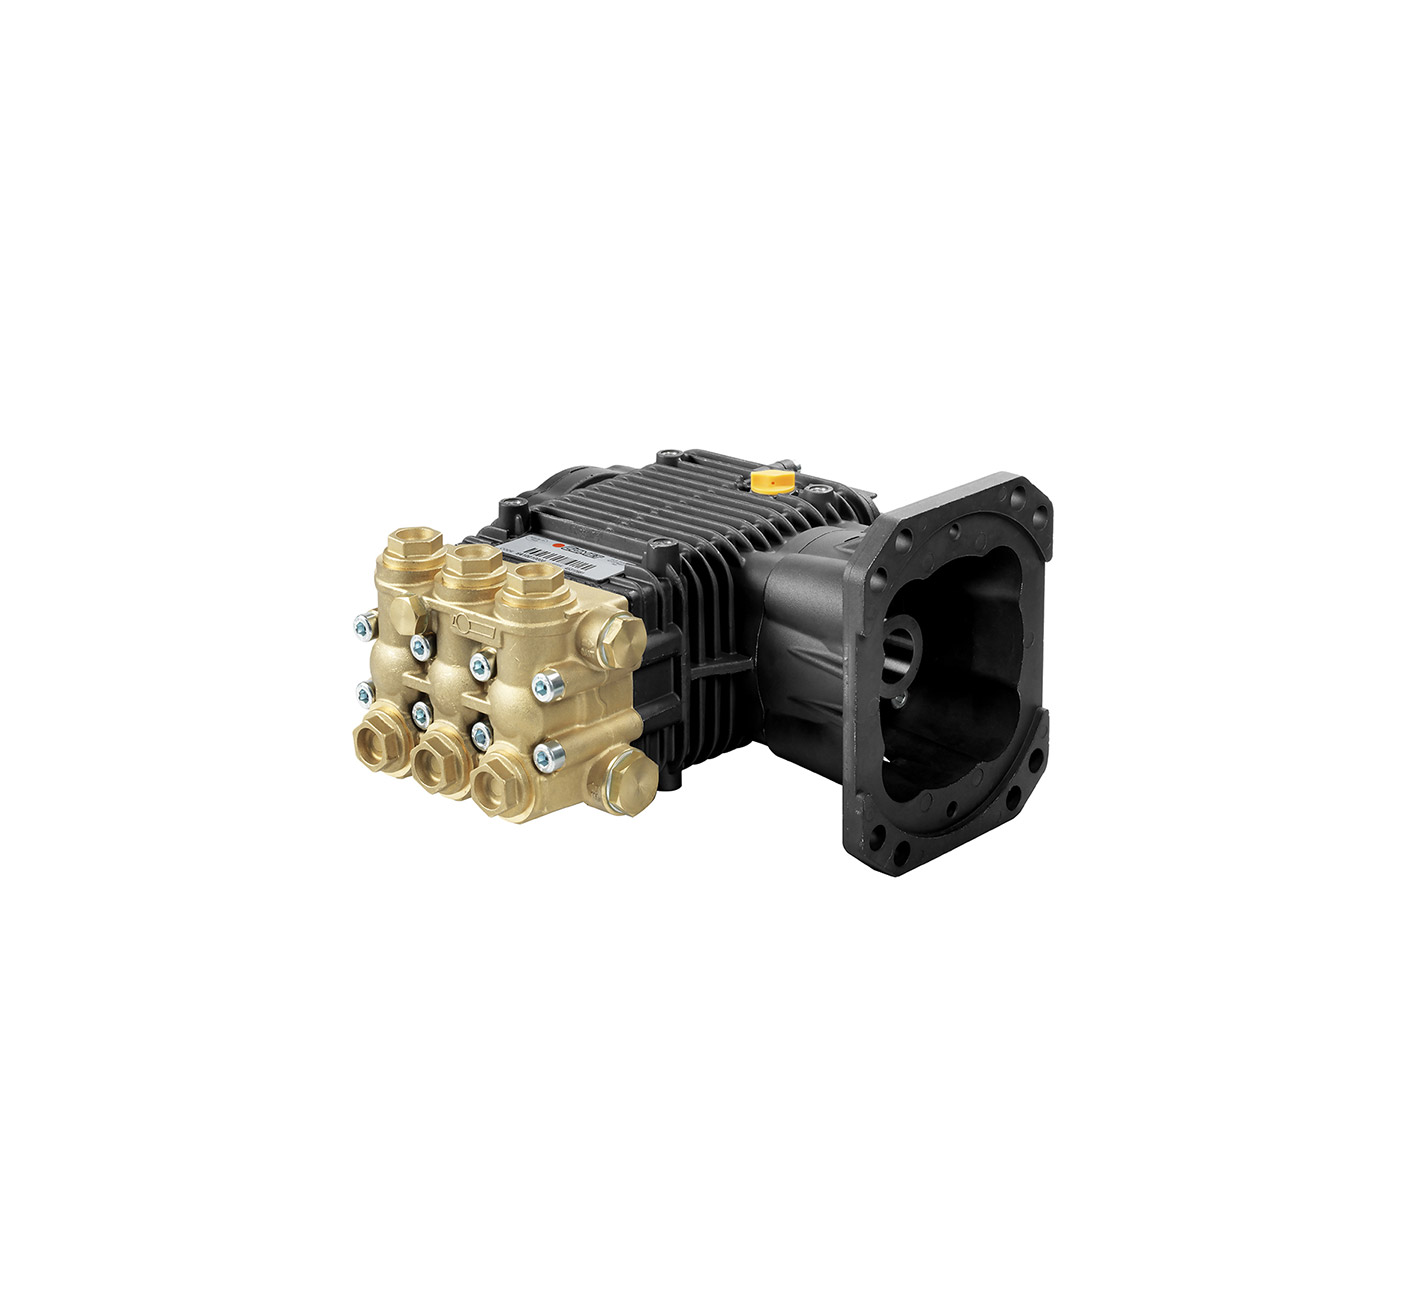 fwd2 g 1 Comet Industrial Pumps